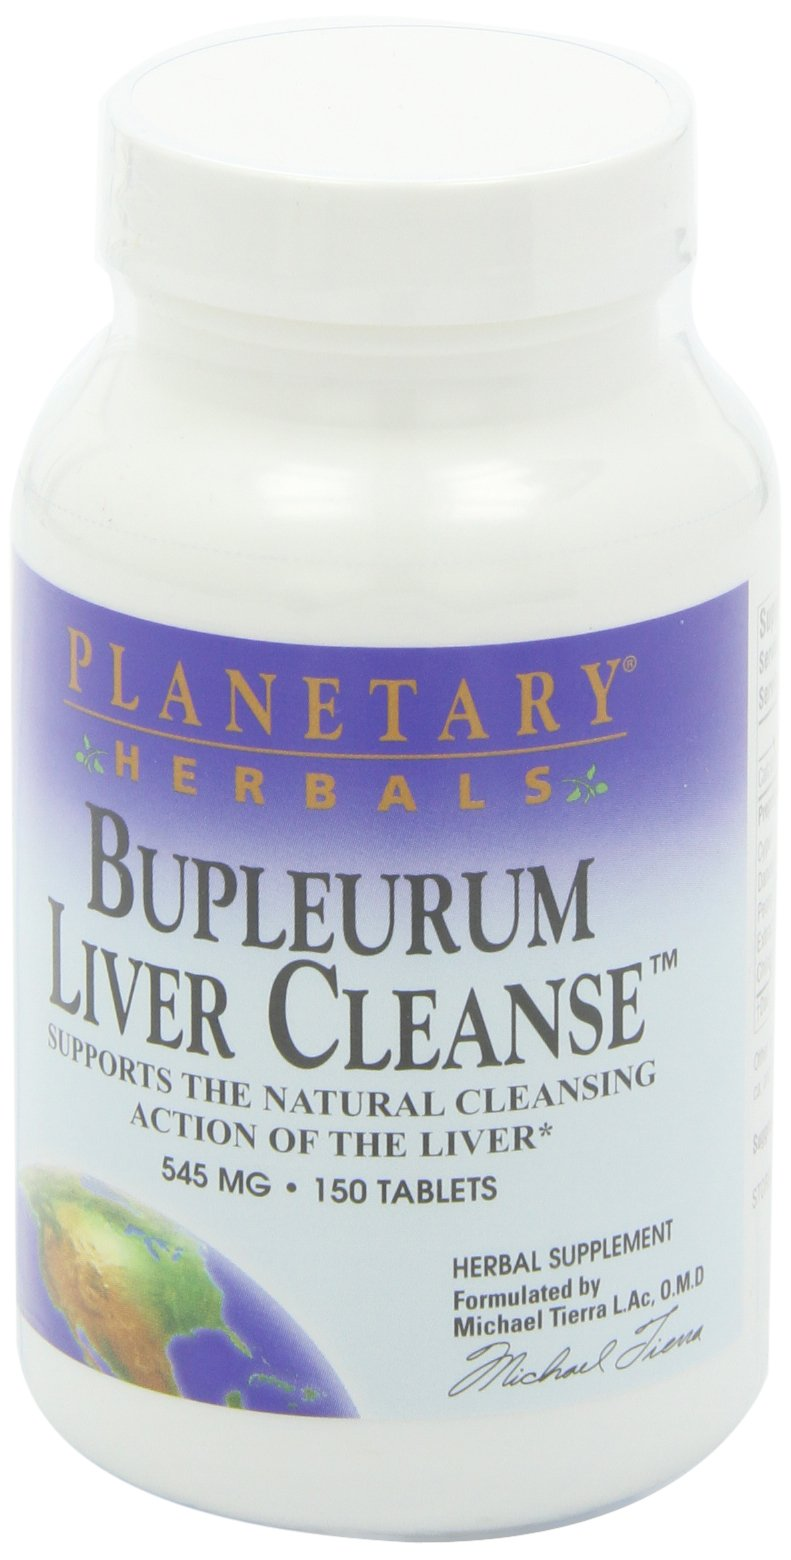 Planetary Herbals Bupleurum Liver Cleanse 545mg - With Calcium, Cypress Rhizome, Ginger & More - 150 Tablets (Pack of 2)